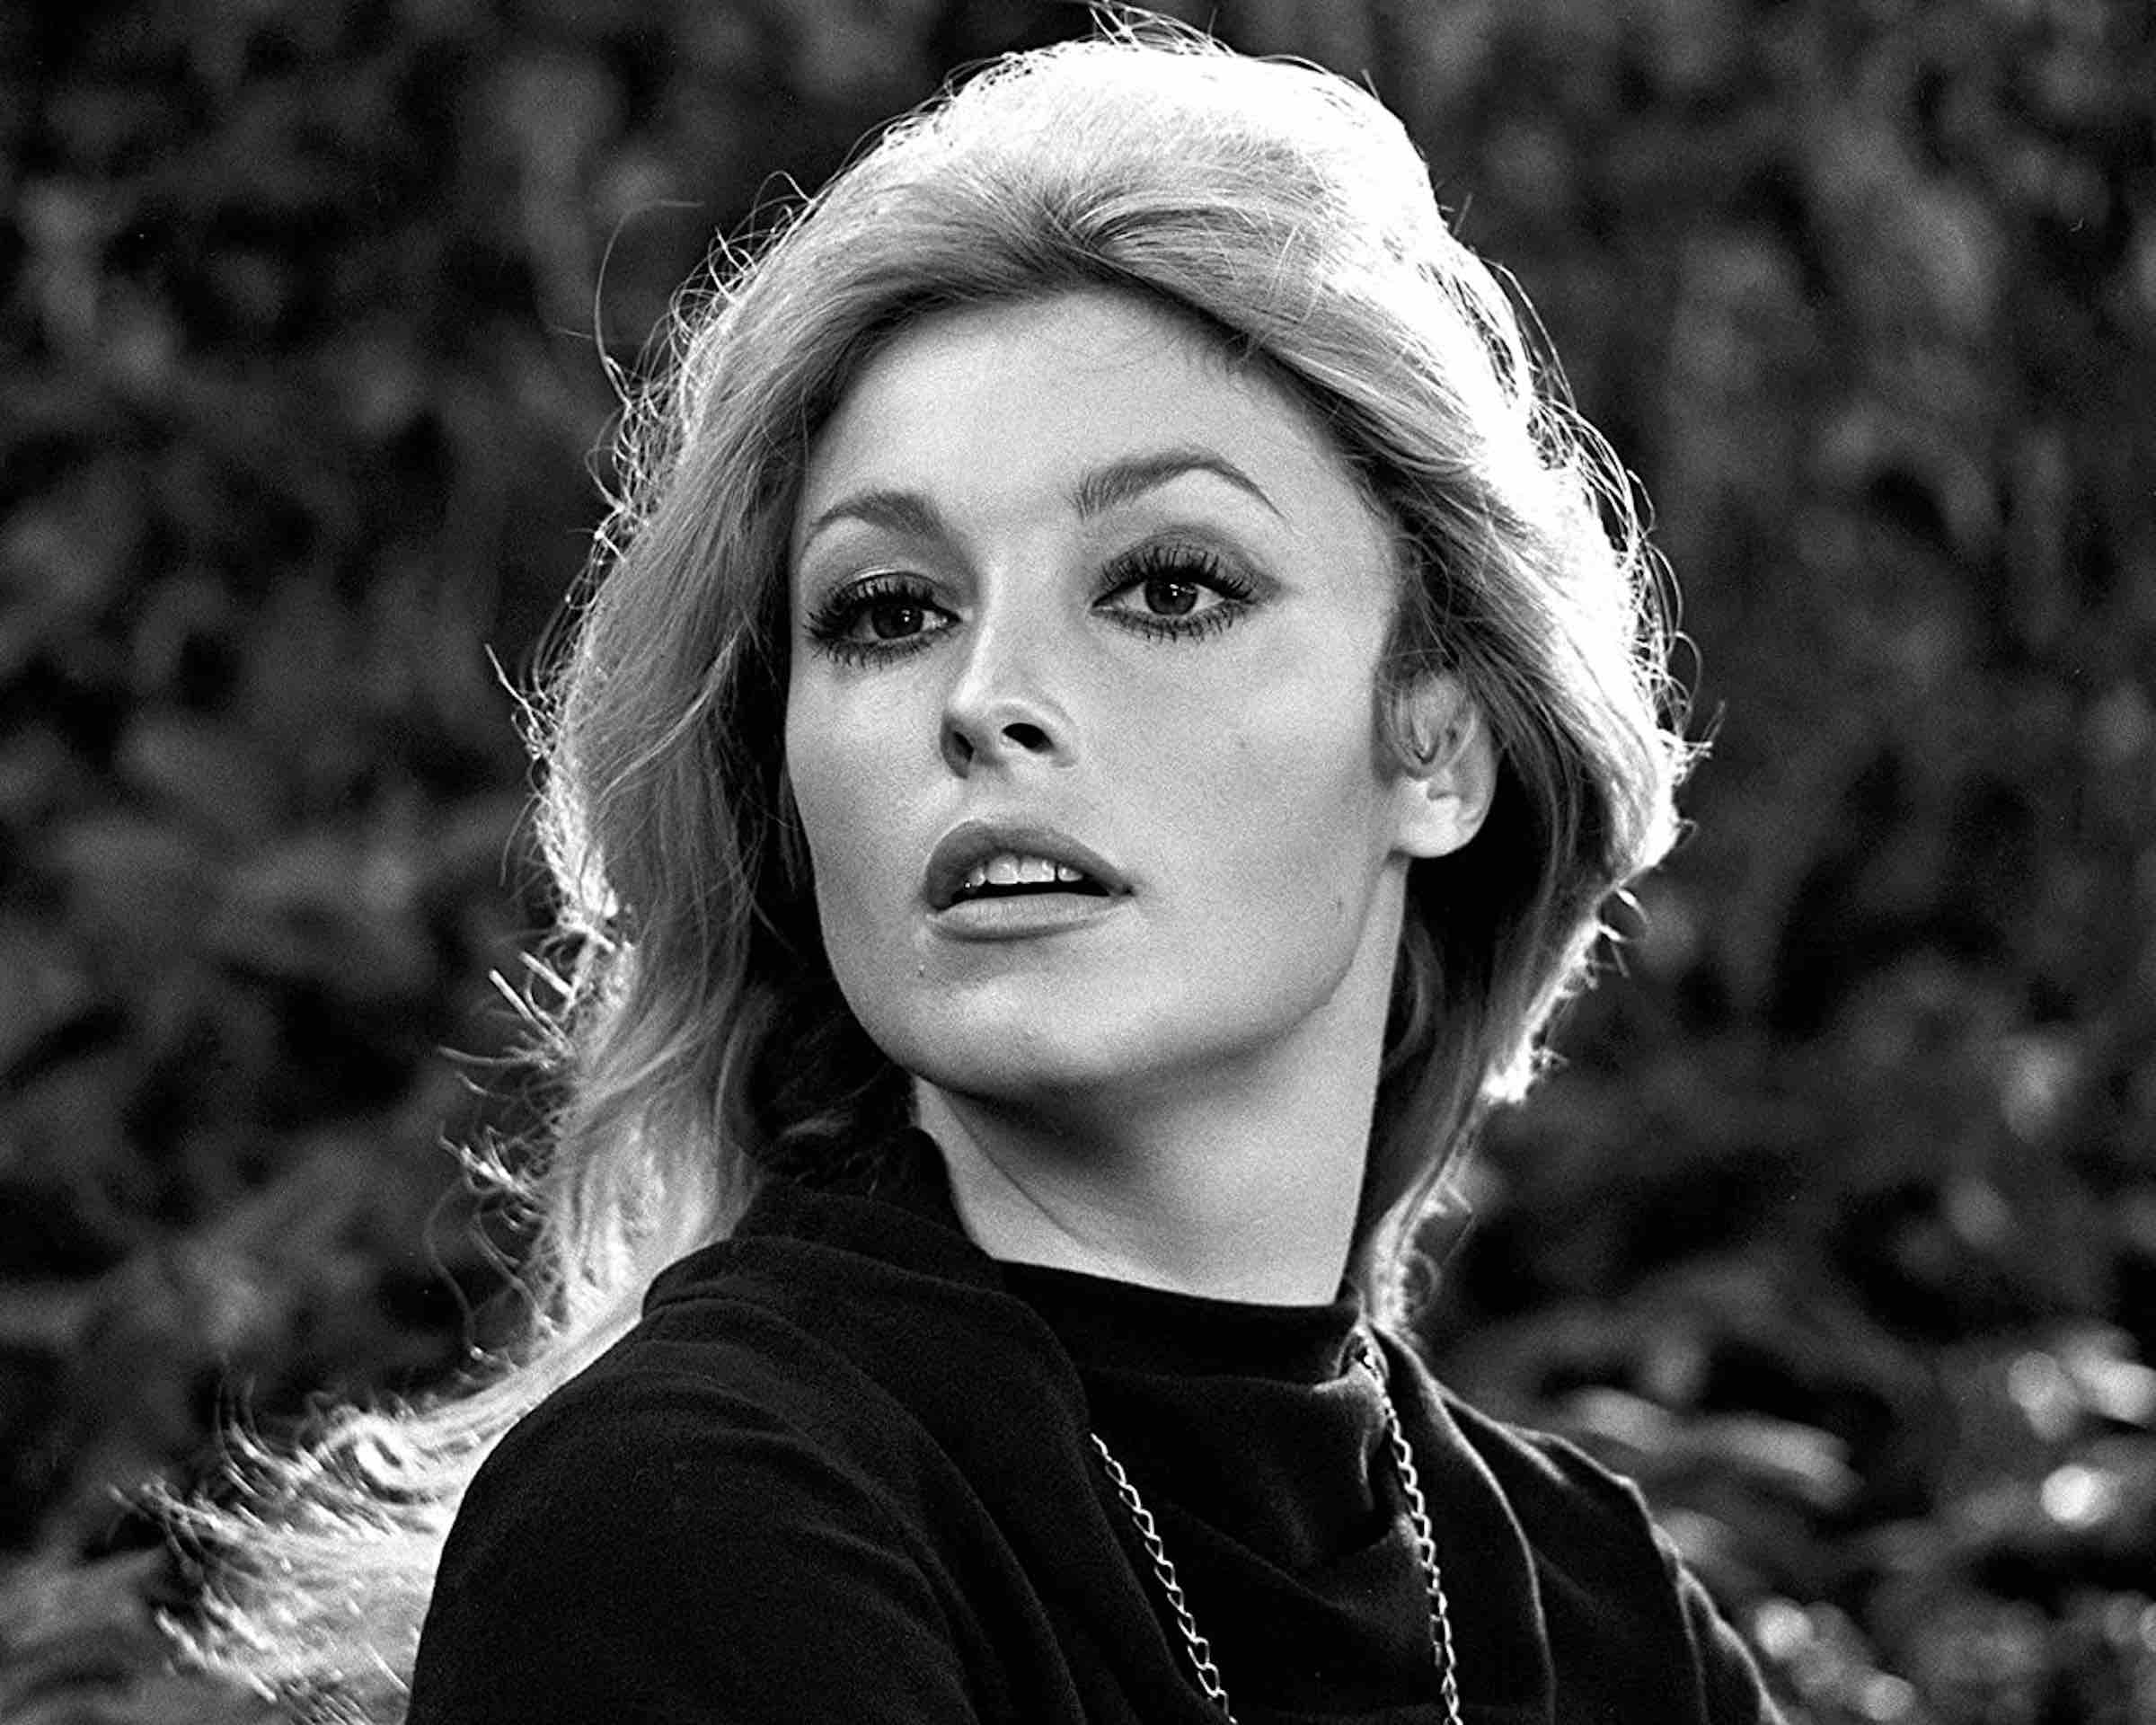 https://filmdaily.co/news/murder-of-sharon-tate/